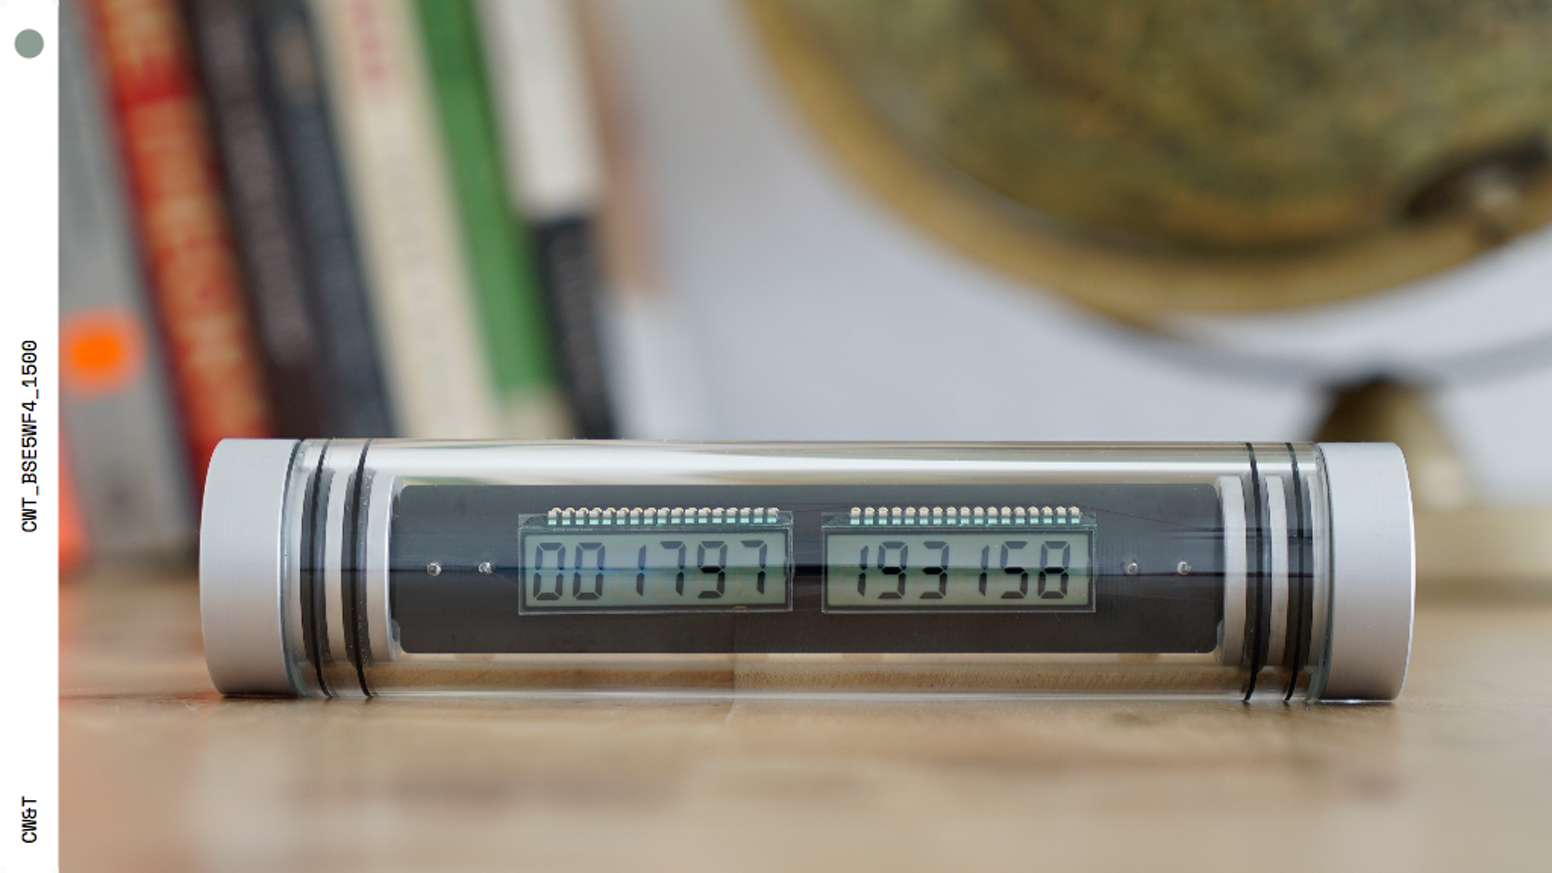 Start a new epoch with a single use forever launch clock. Make time your own.